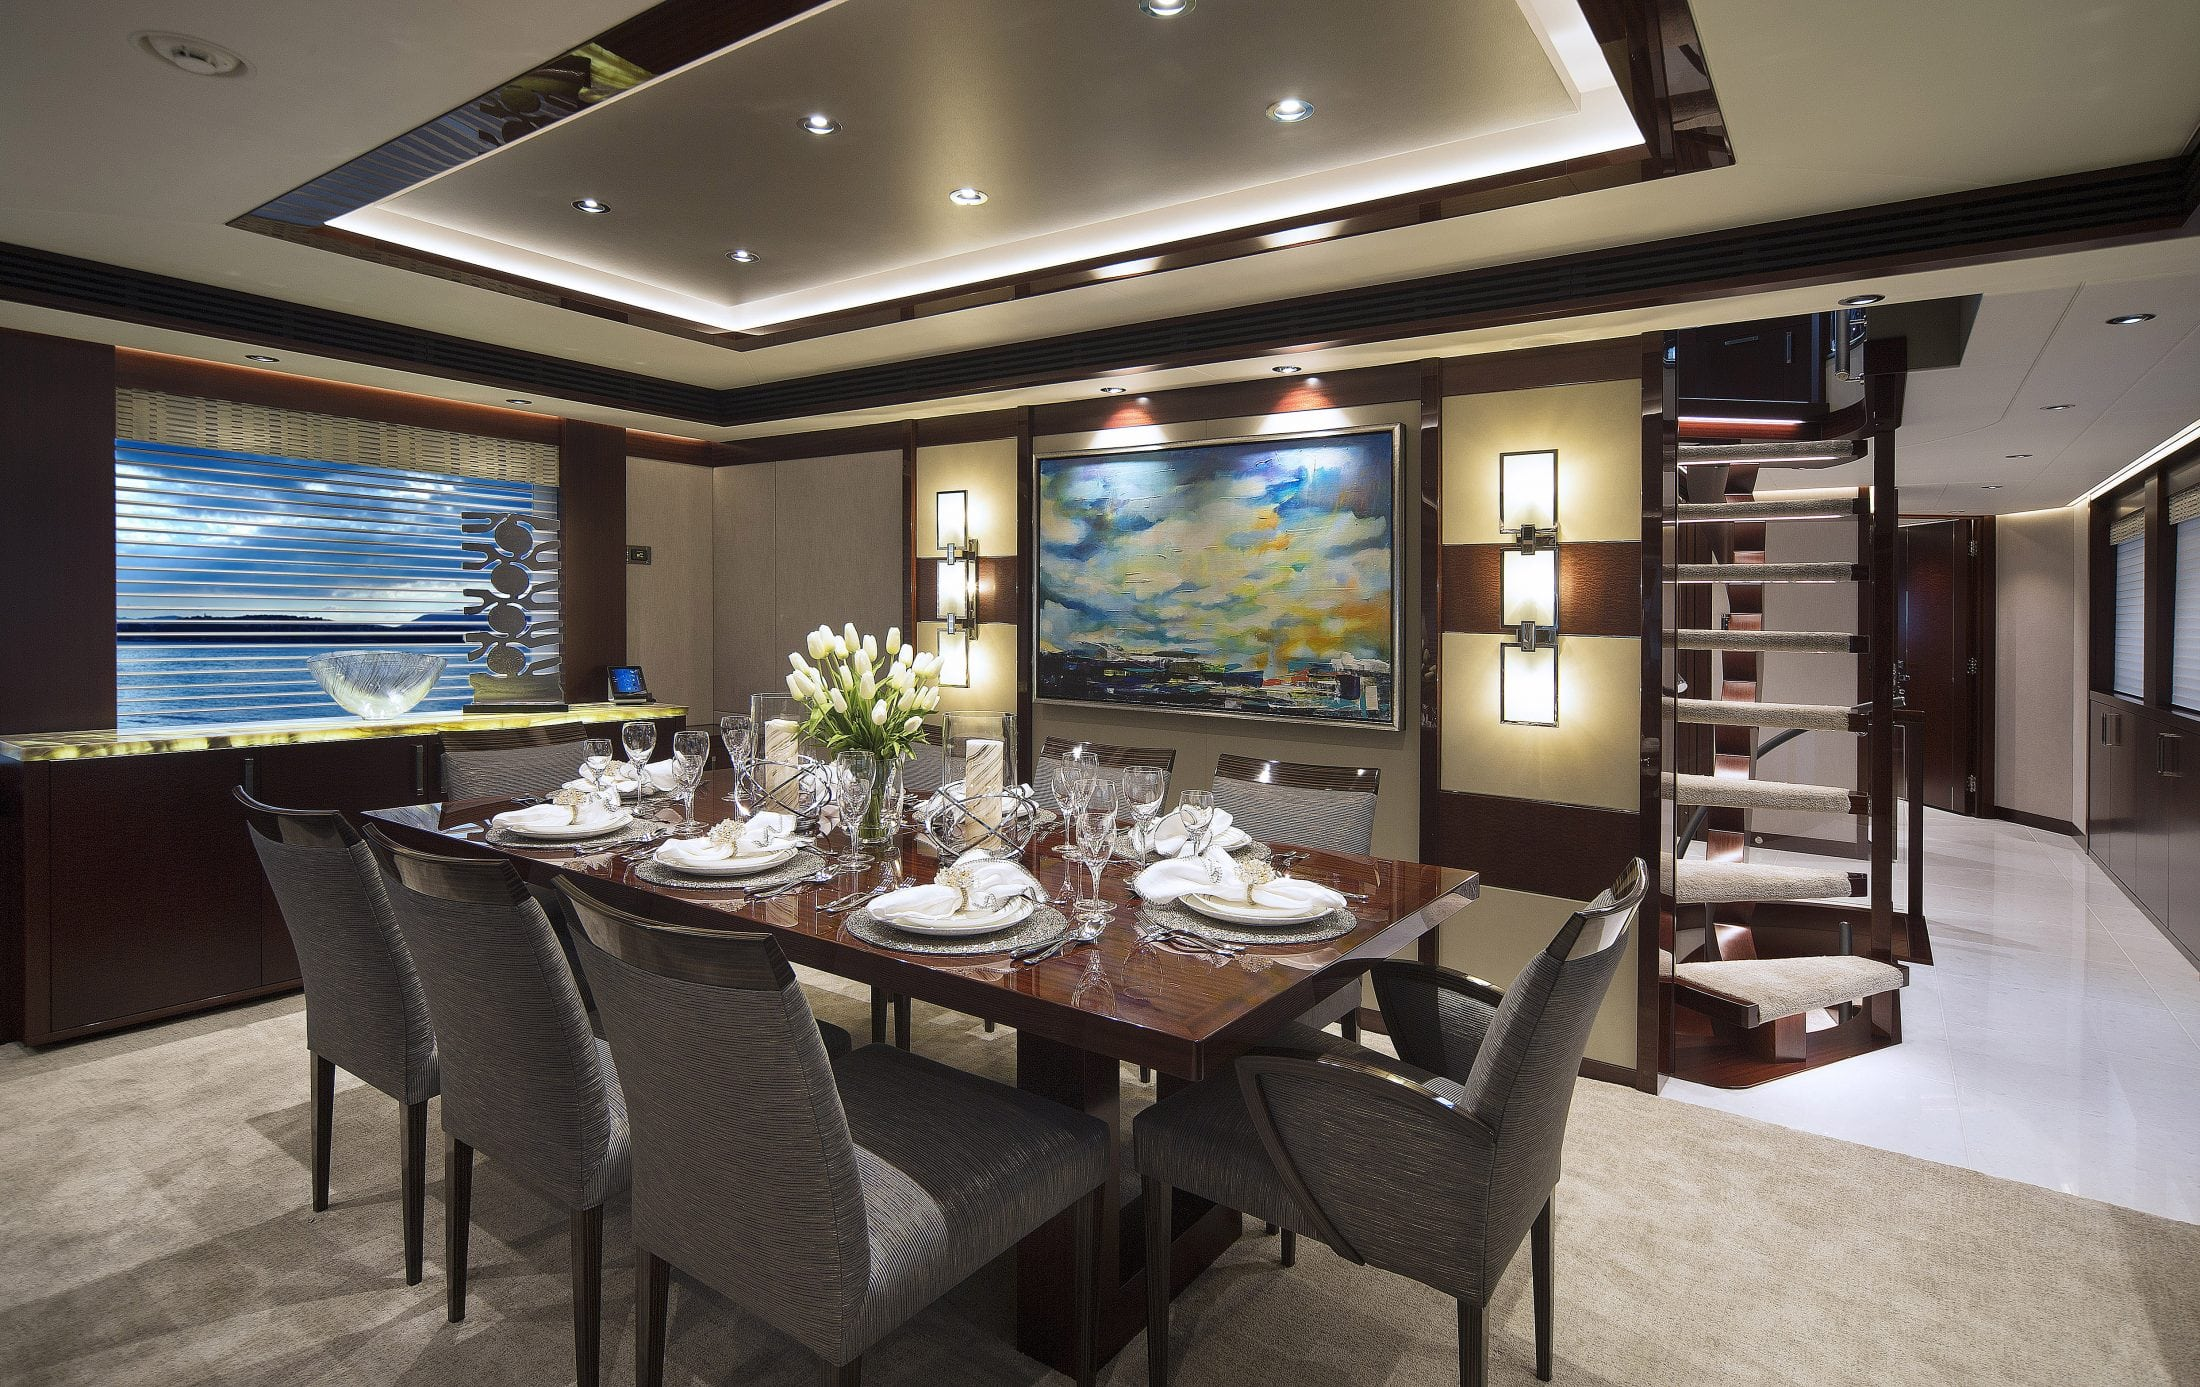 125' (38M) Westport Eccentric Dining Salon